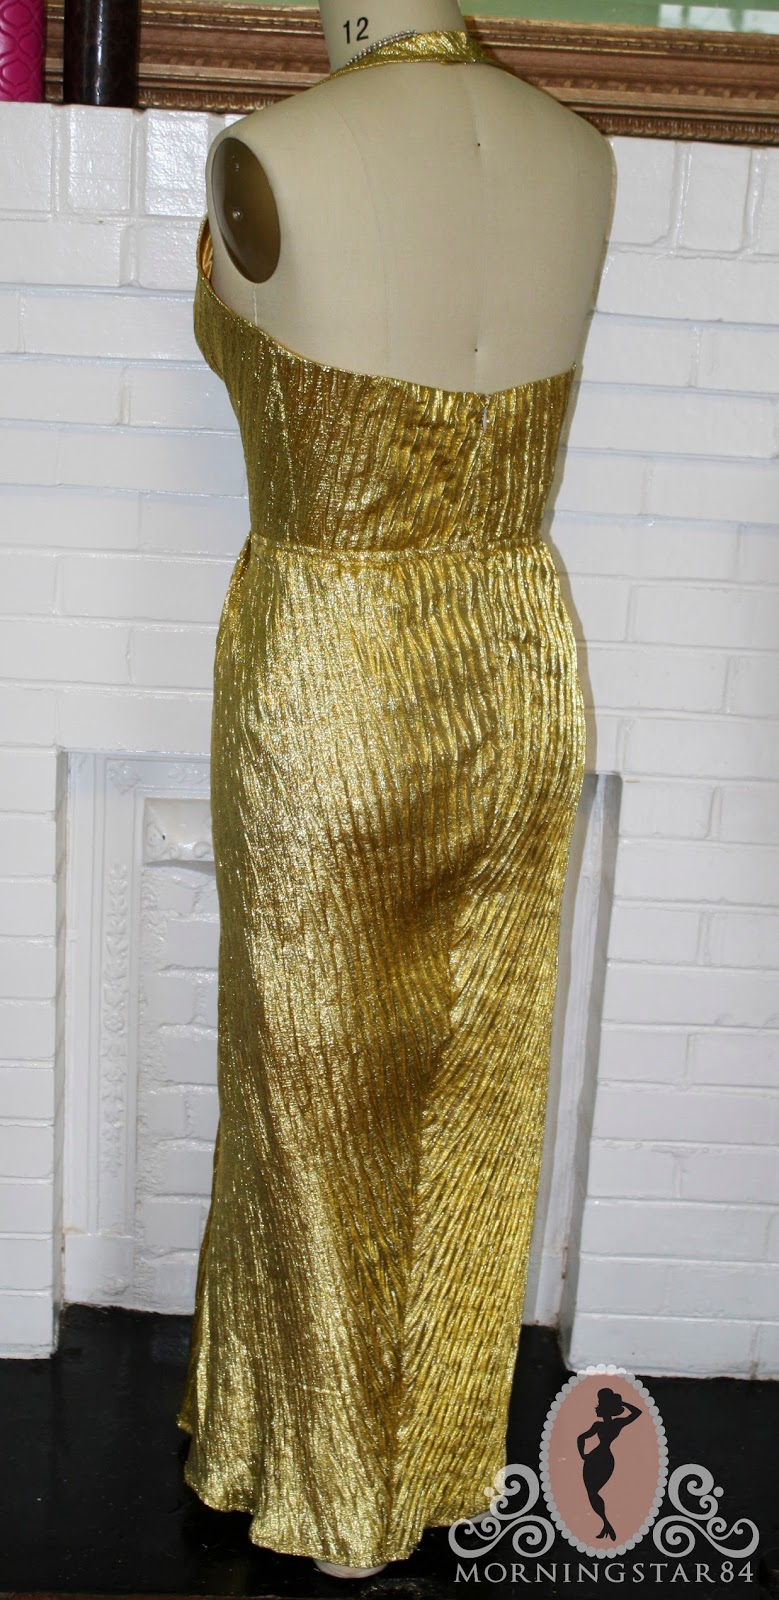 Morningstar Pinup Marilyn Monroe Gold Lame Dress Simplified